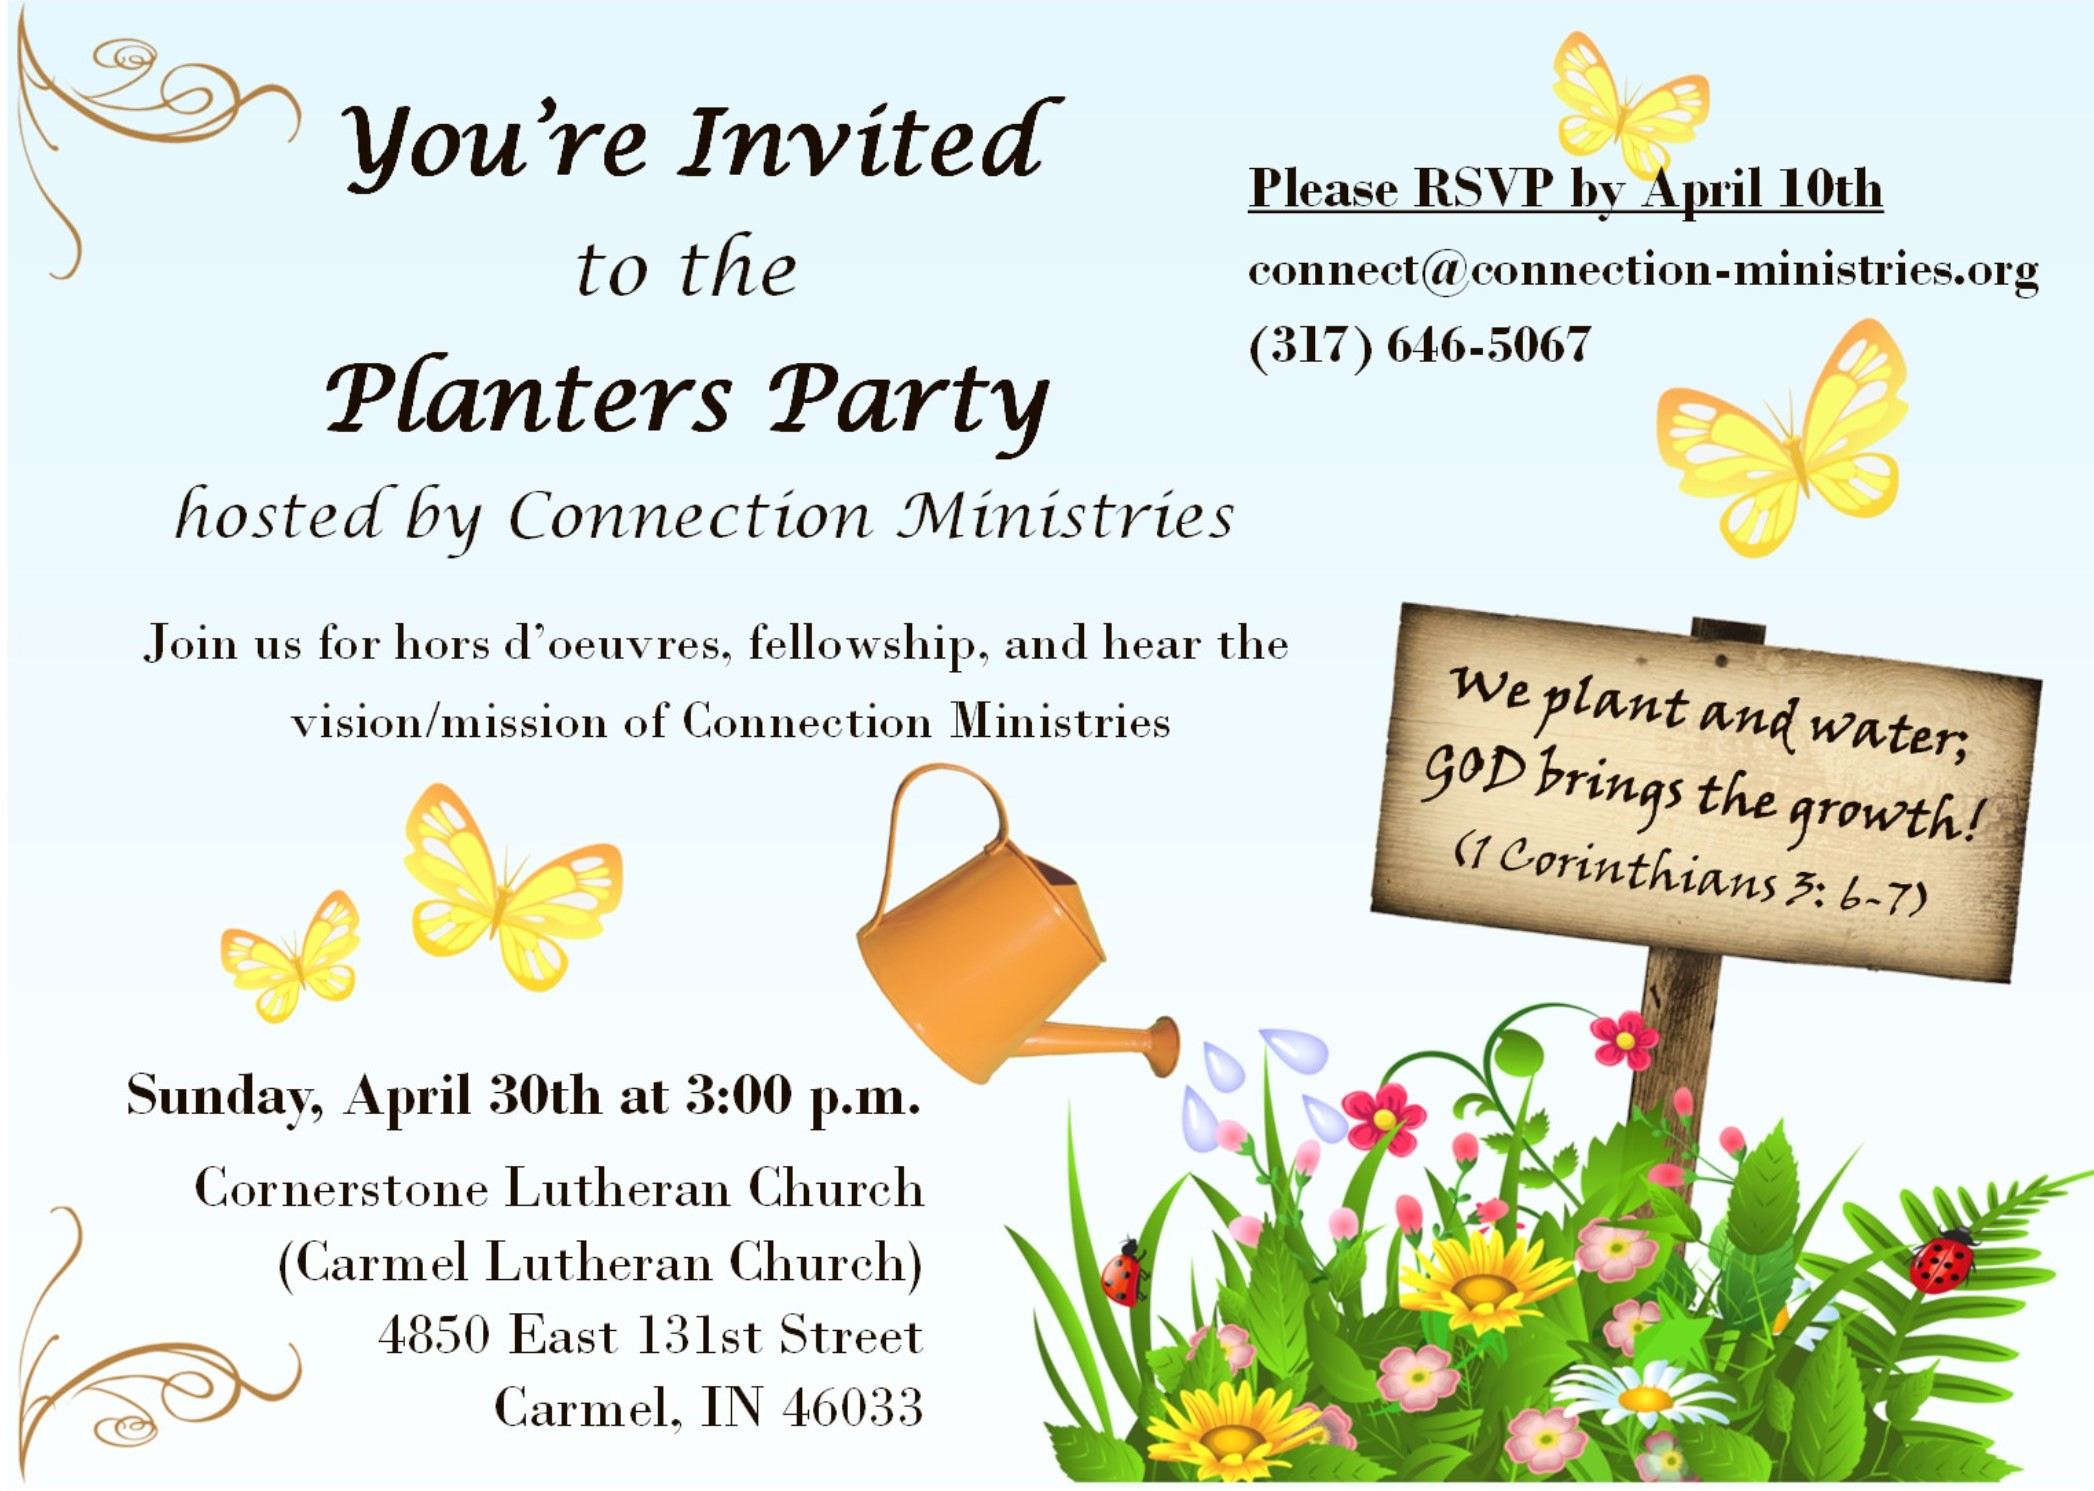 Planter's Party Invitation